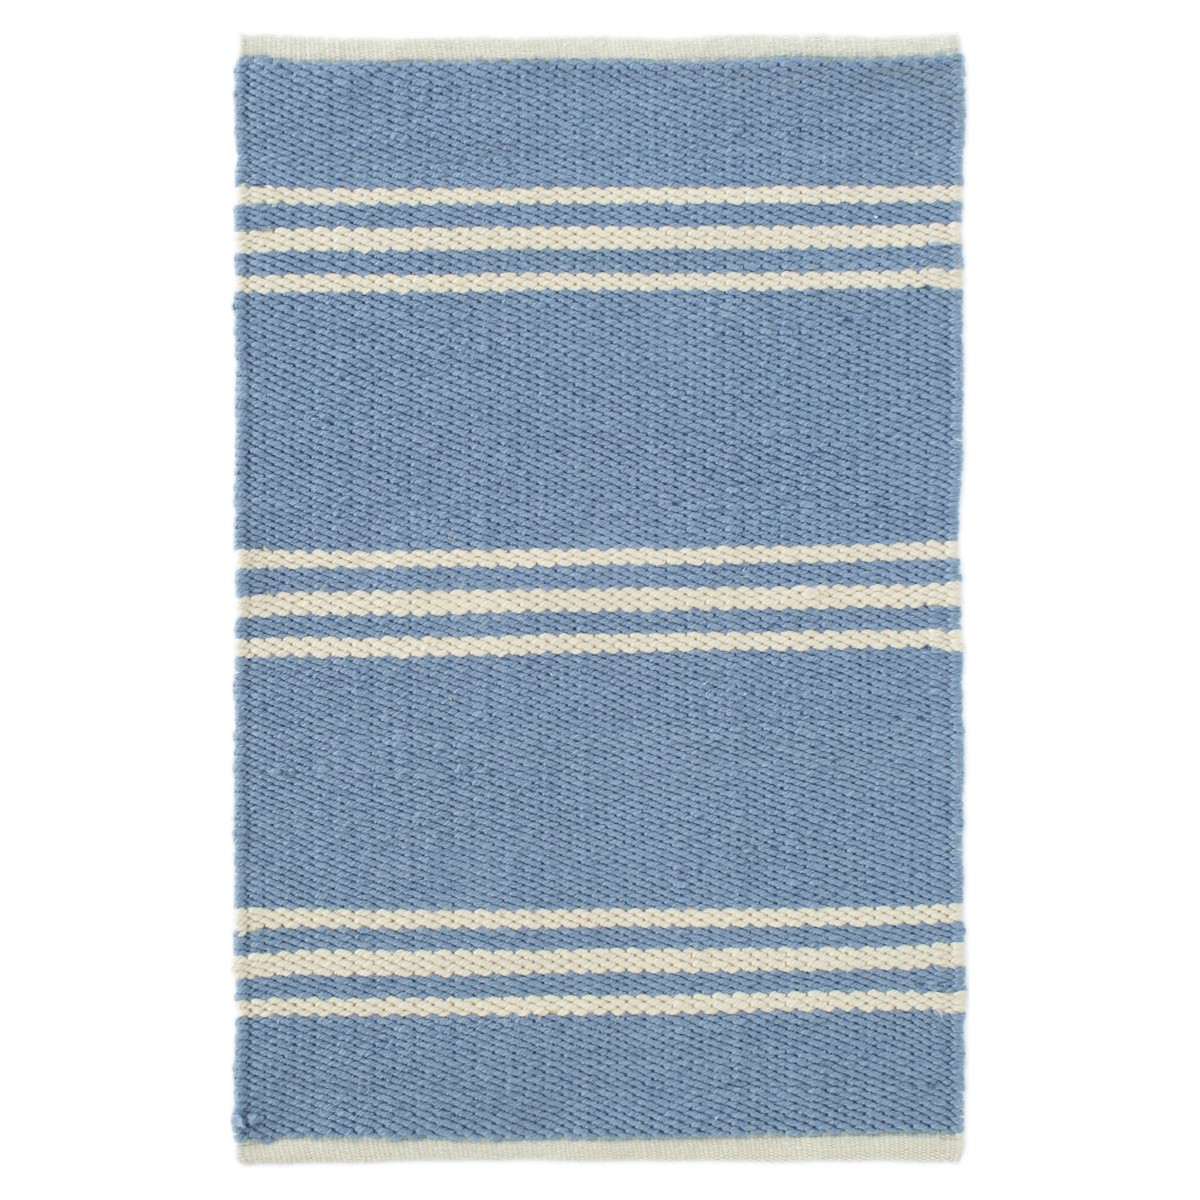 Lexington Indoor/Outdoor Rug - French Blue